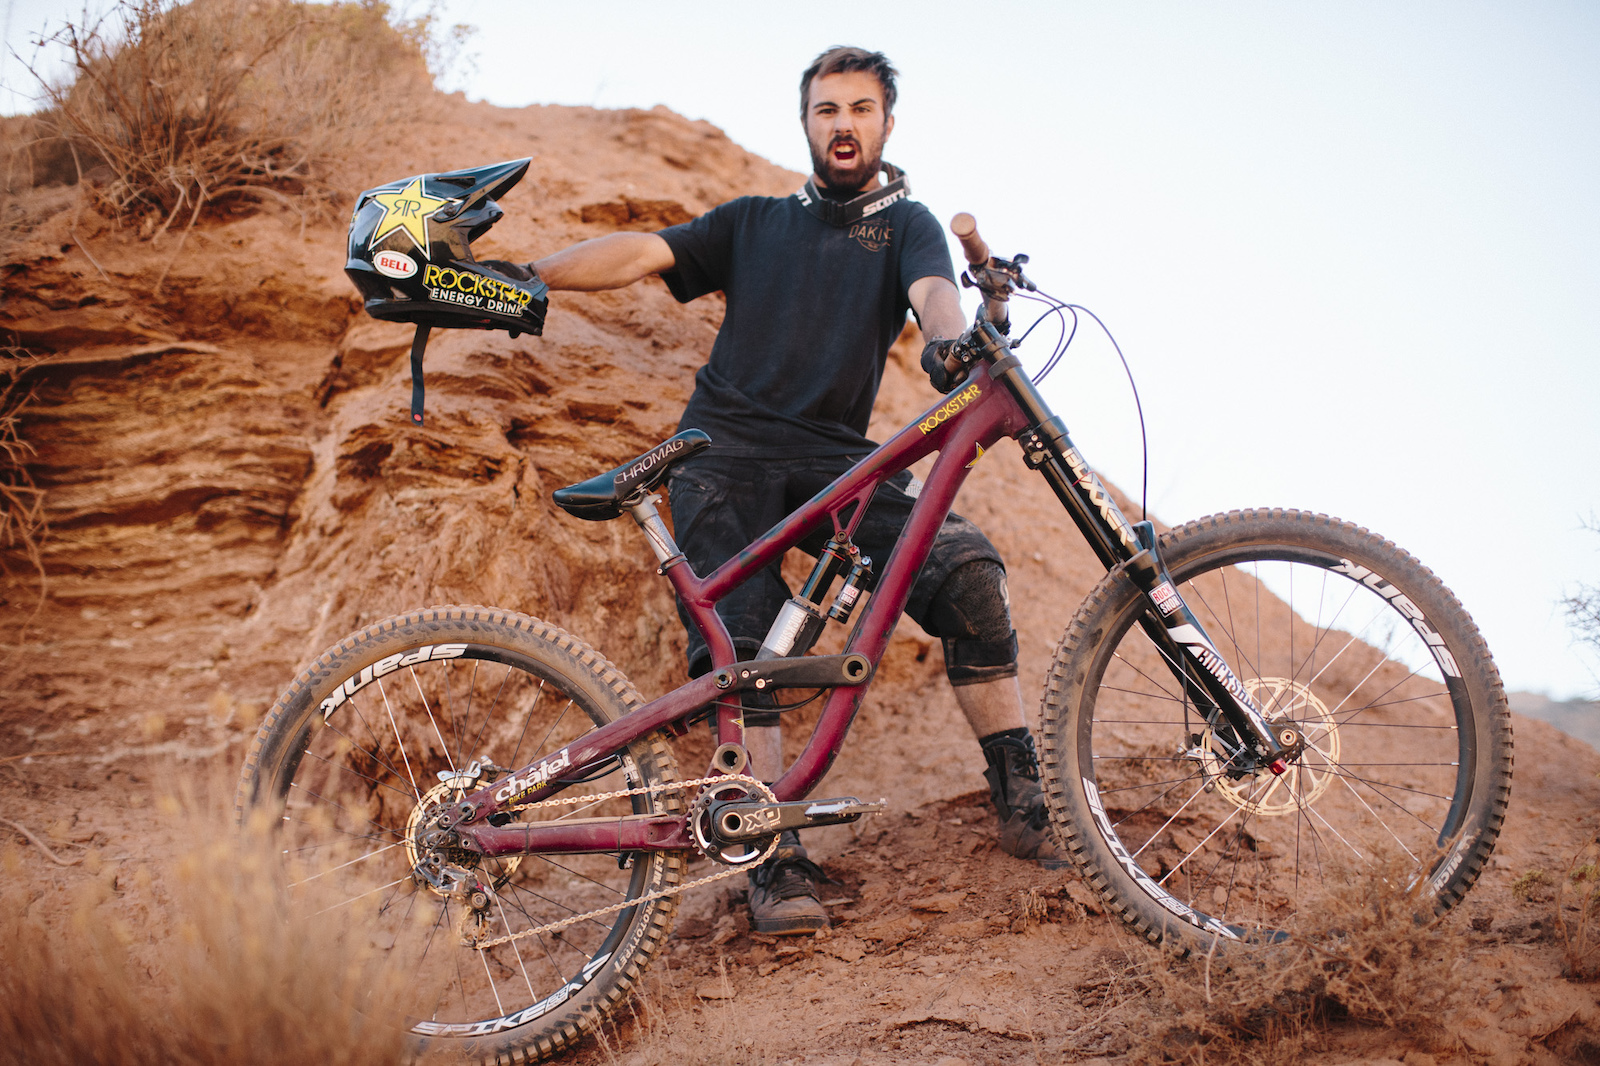 Louis Reboul at RedBull Rampage 2015 Virgin Utah USA